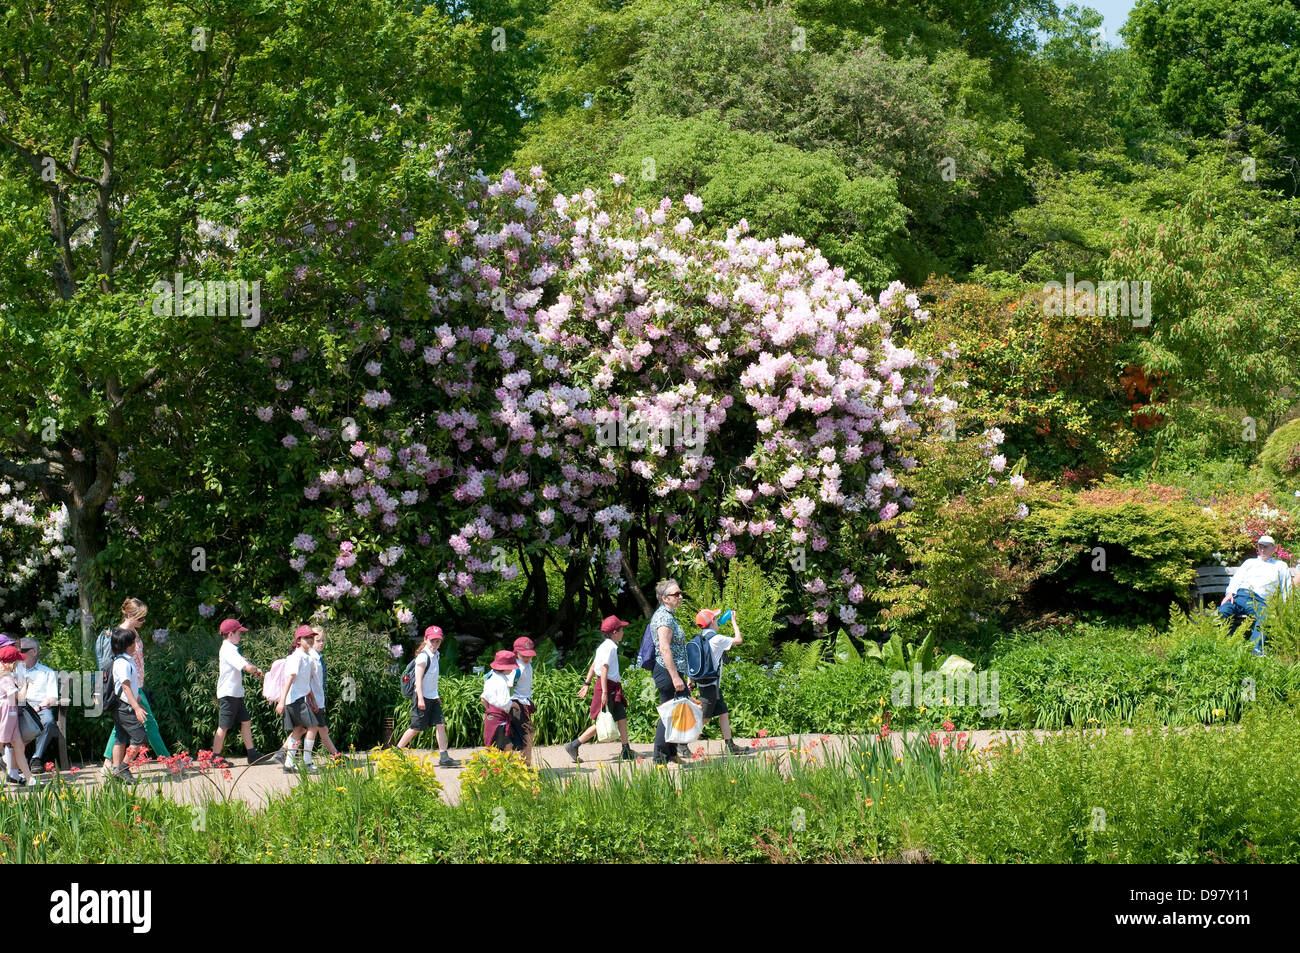 Group of schoolchildren in Wisley Garden, Surrey, UK - Stock Image